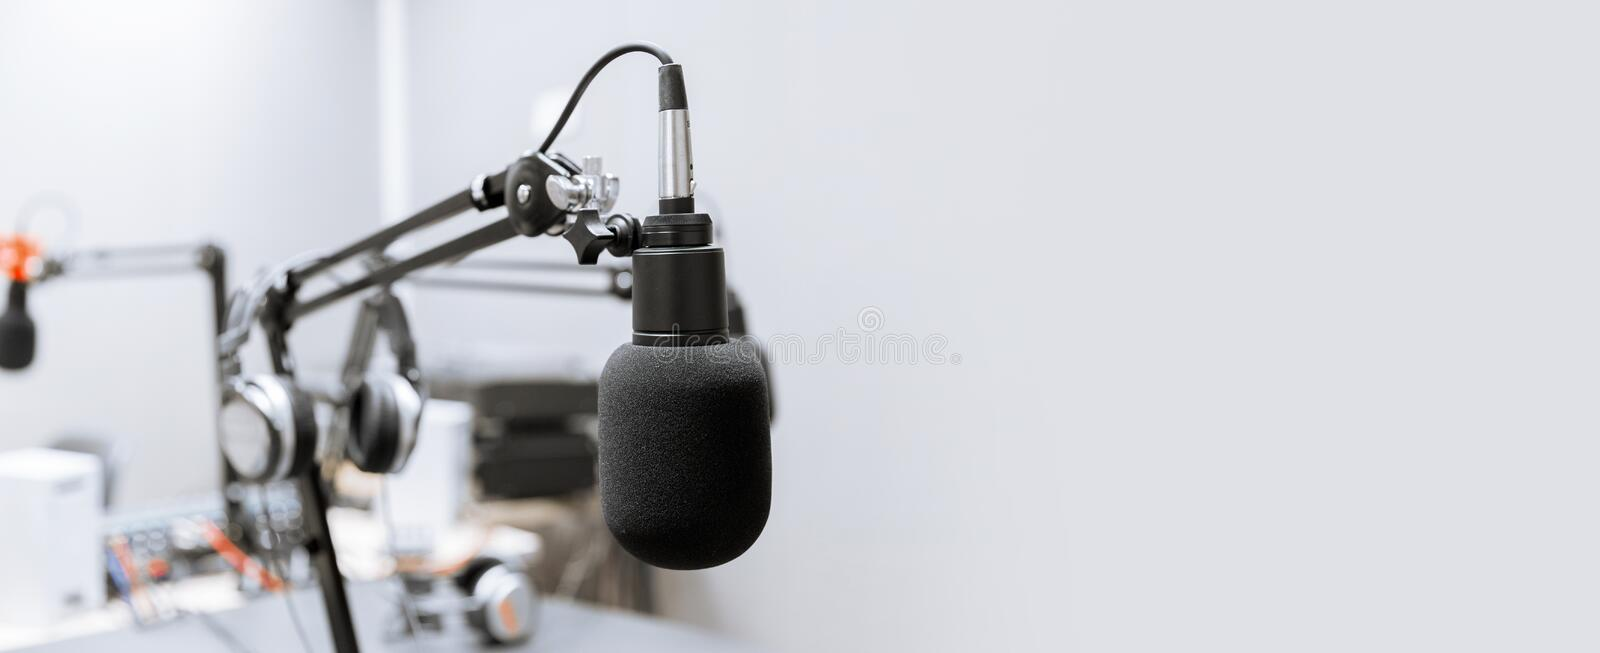 Microphone at recording studio or radio station. Technology and audio equipment concept - microphone at recording studio or radio station royalty free stock image